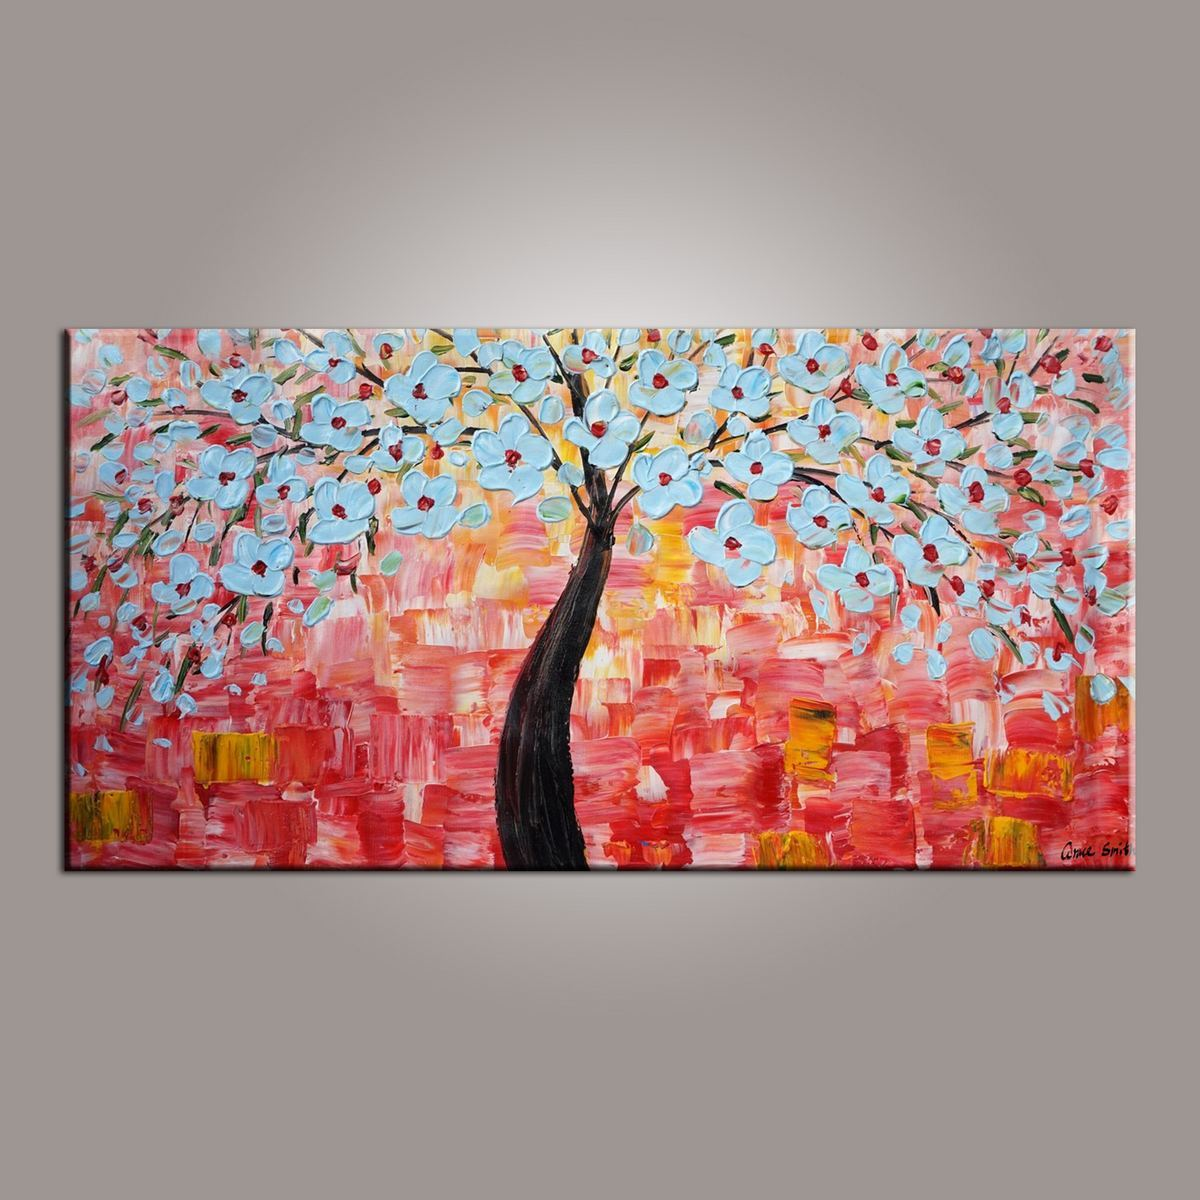 Flower Art, Abstract Art Painting, Tree Painting, Painting on Sale, Canvas Wall Art, Bedroom Wall Art, Canvas Art, Modern Art, Contemporary Art